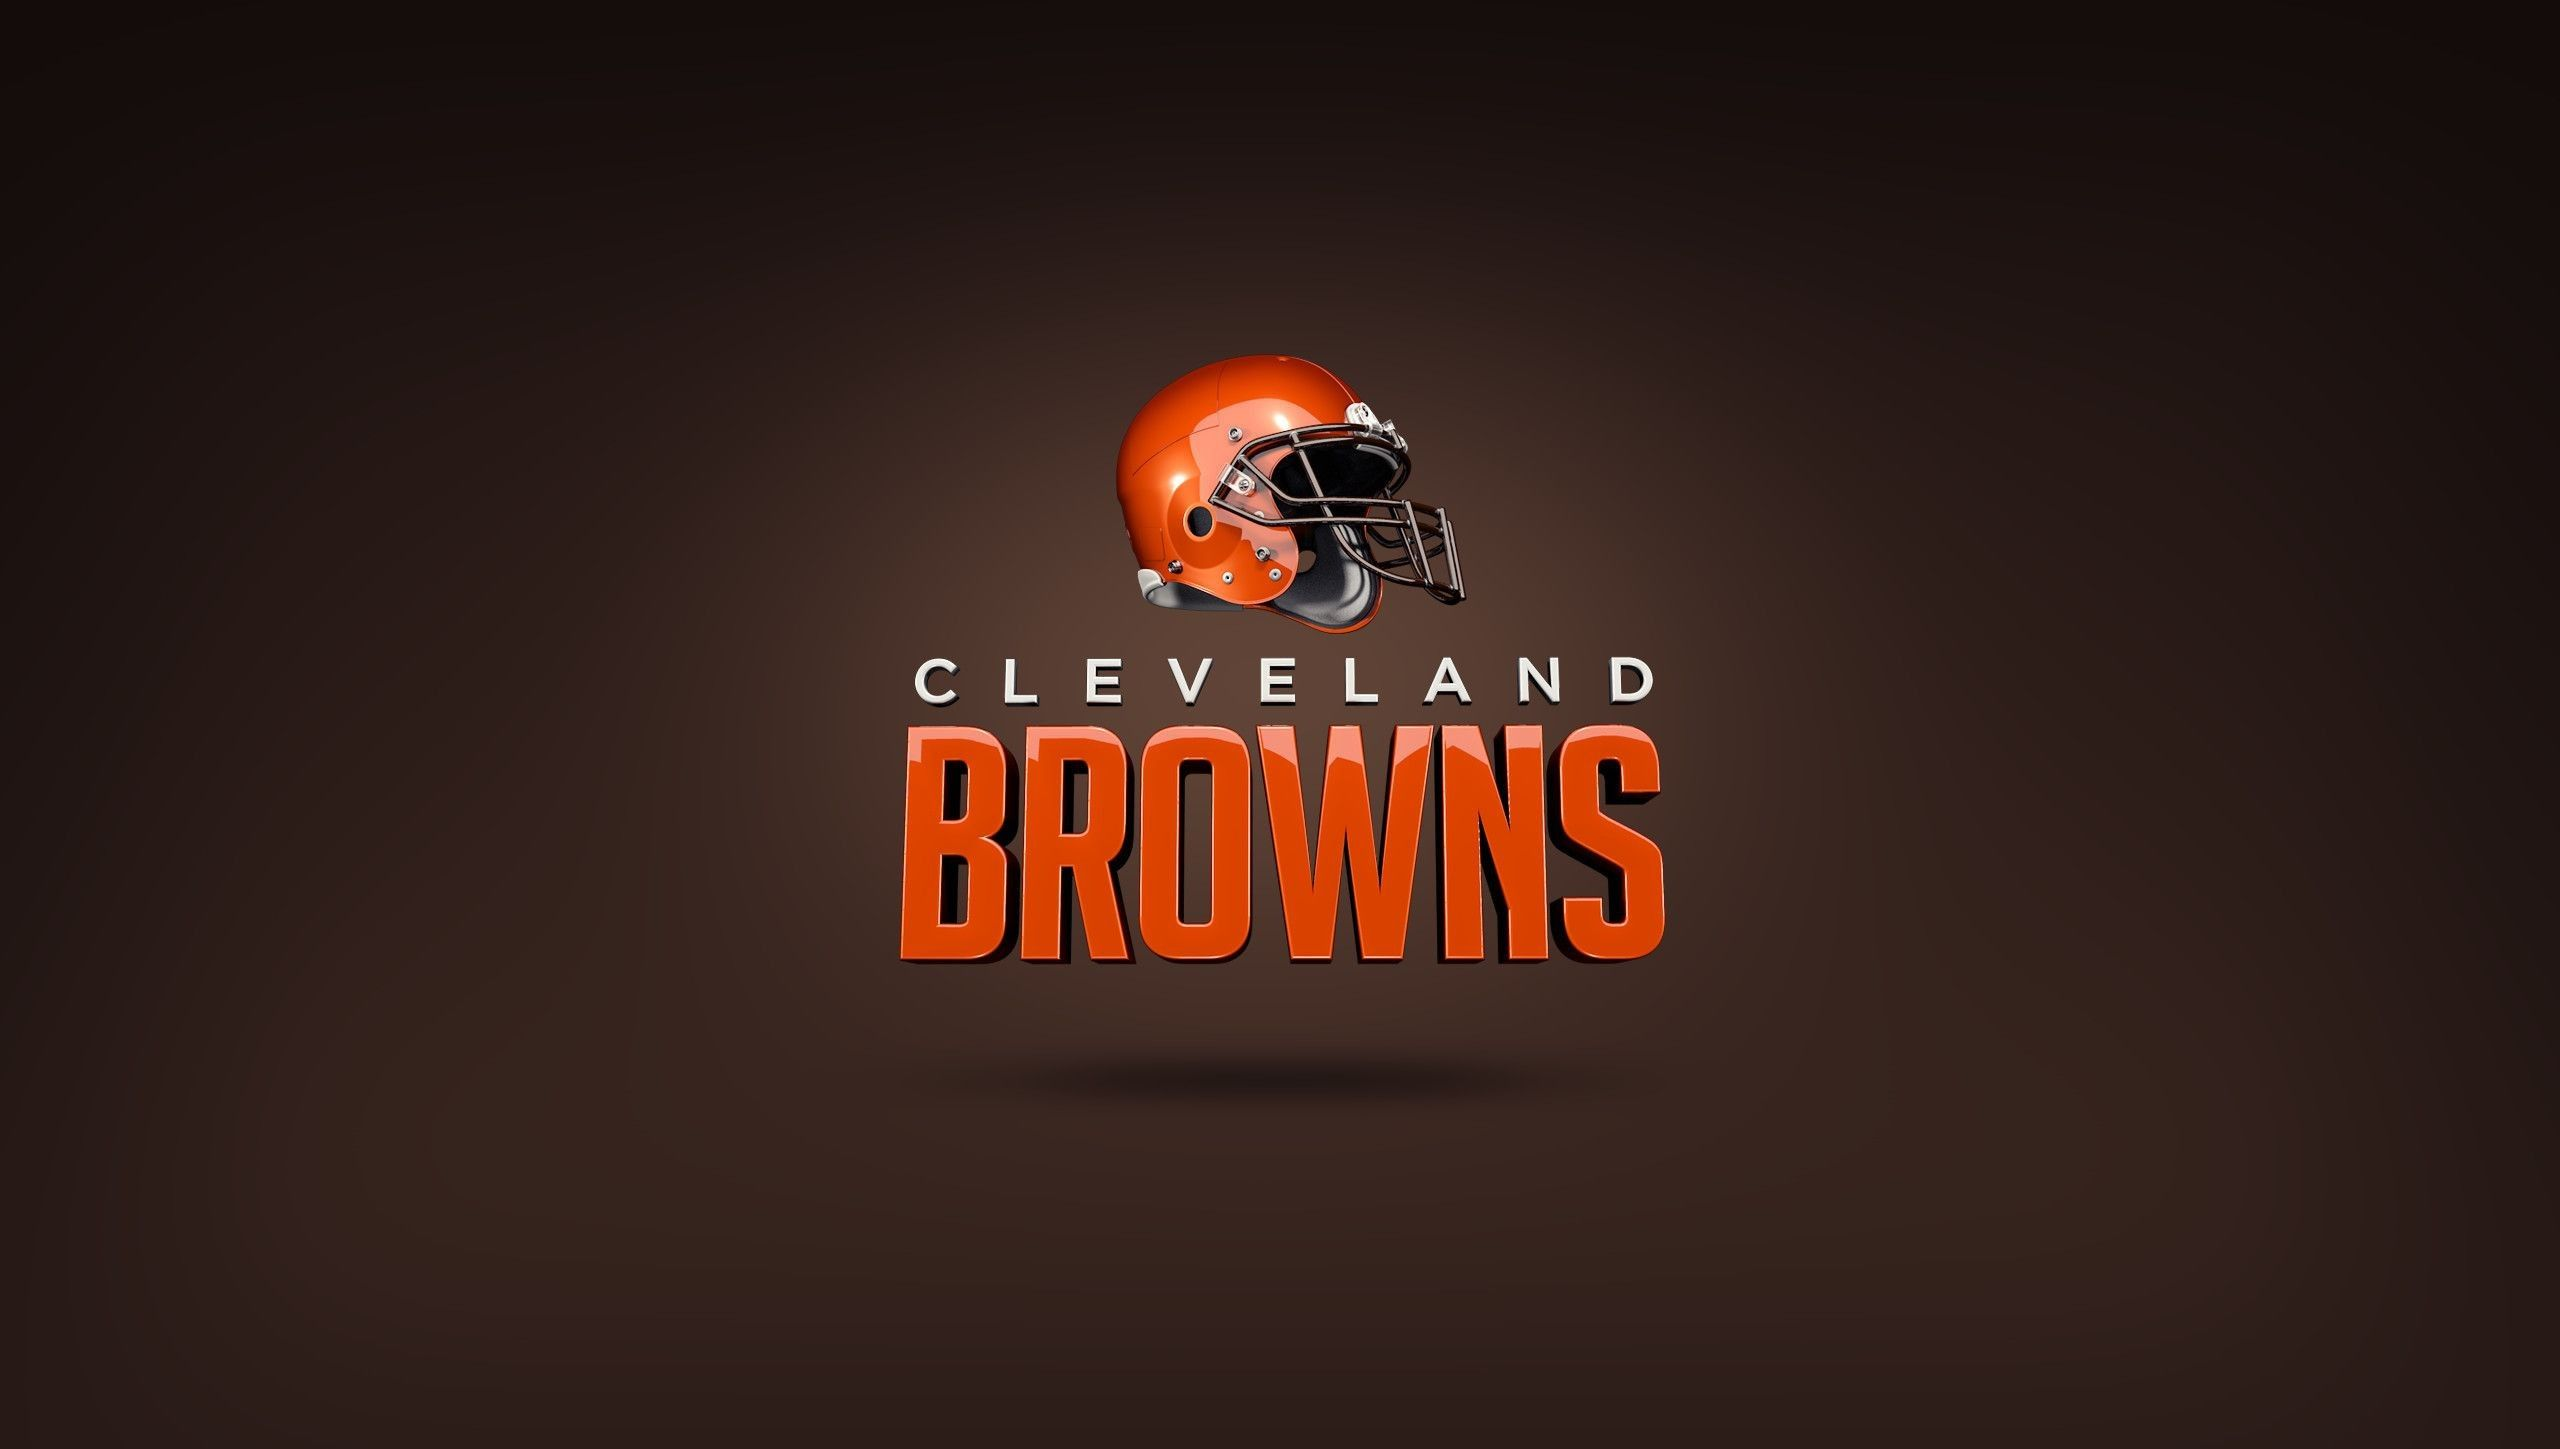 New Cleveland Browns Screensaver In 2020 Cleveland Browns Wallpaper Nfl Football Wallpaper Cleveland Browns